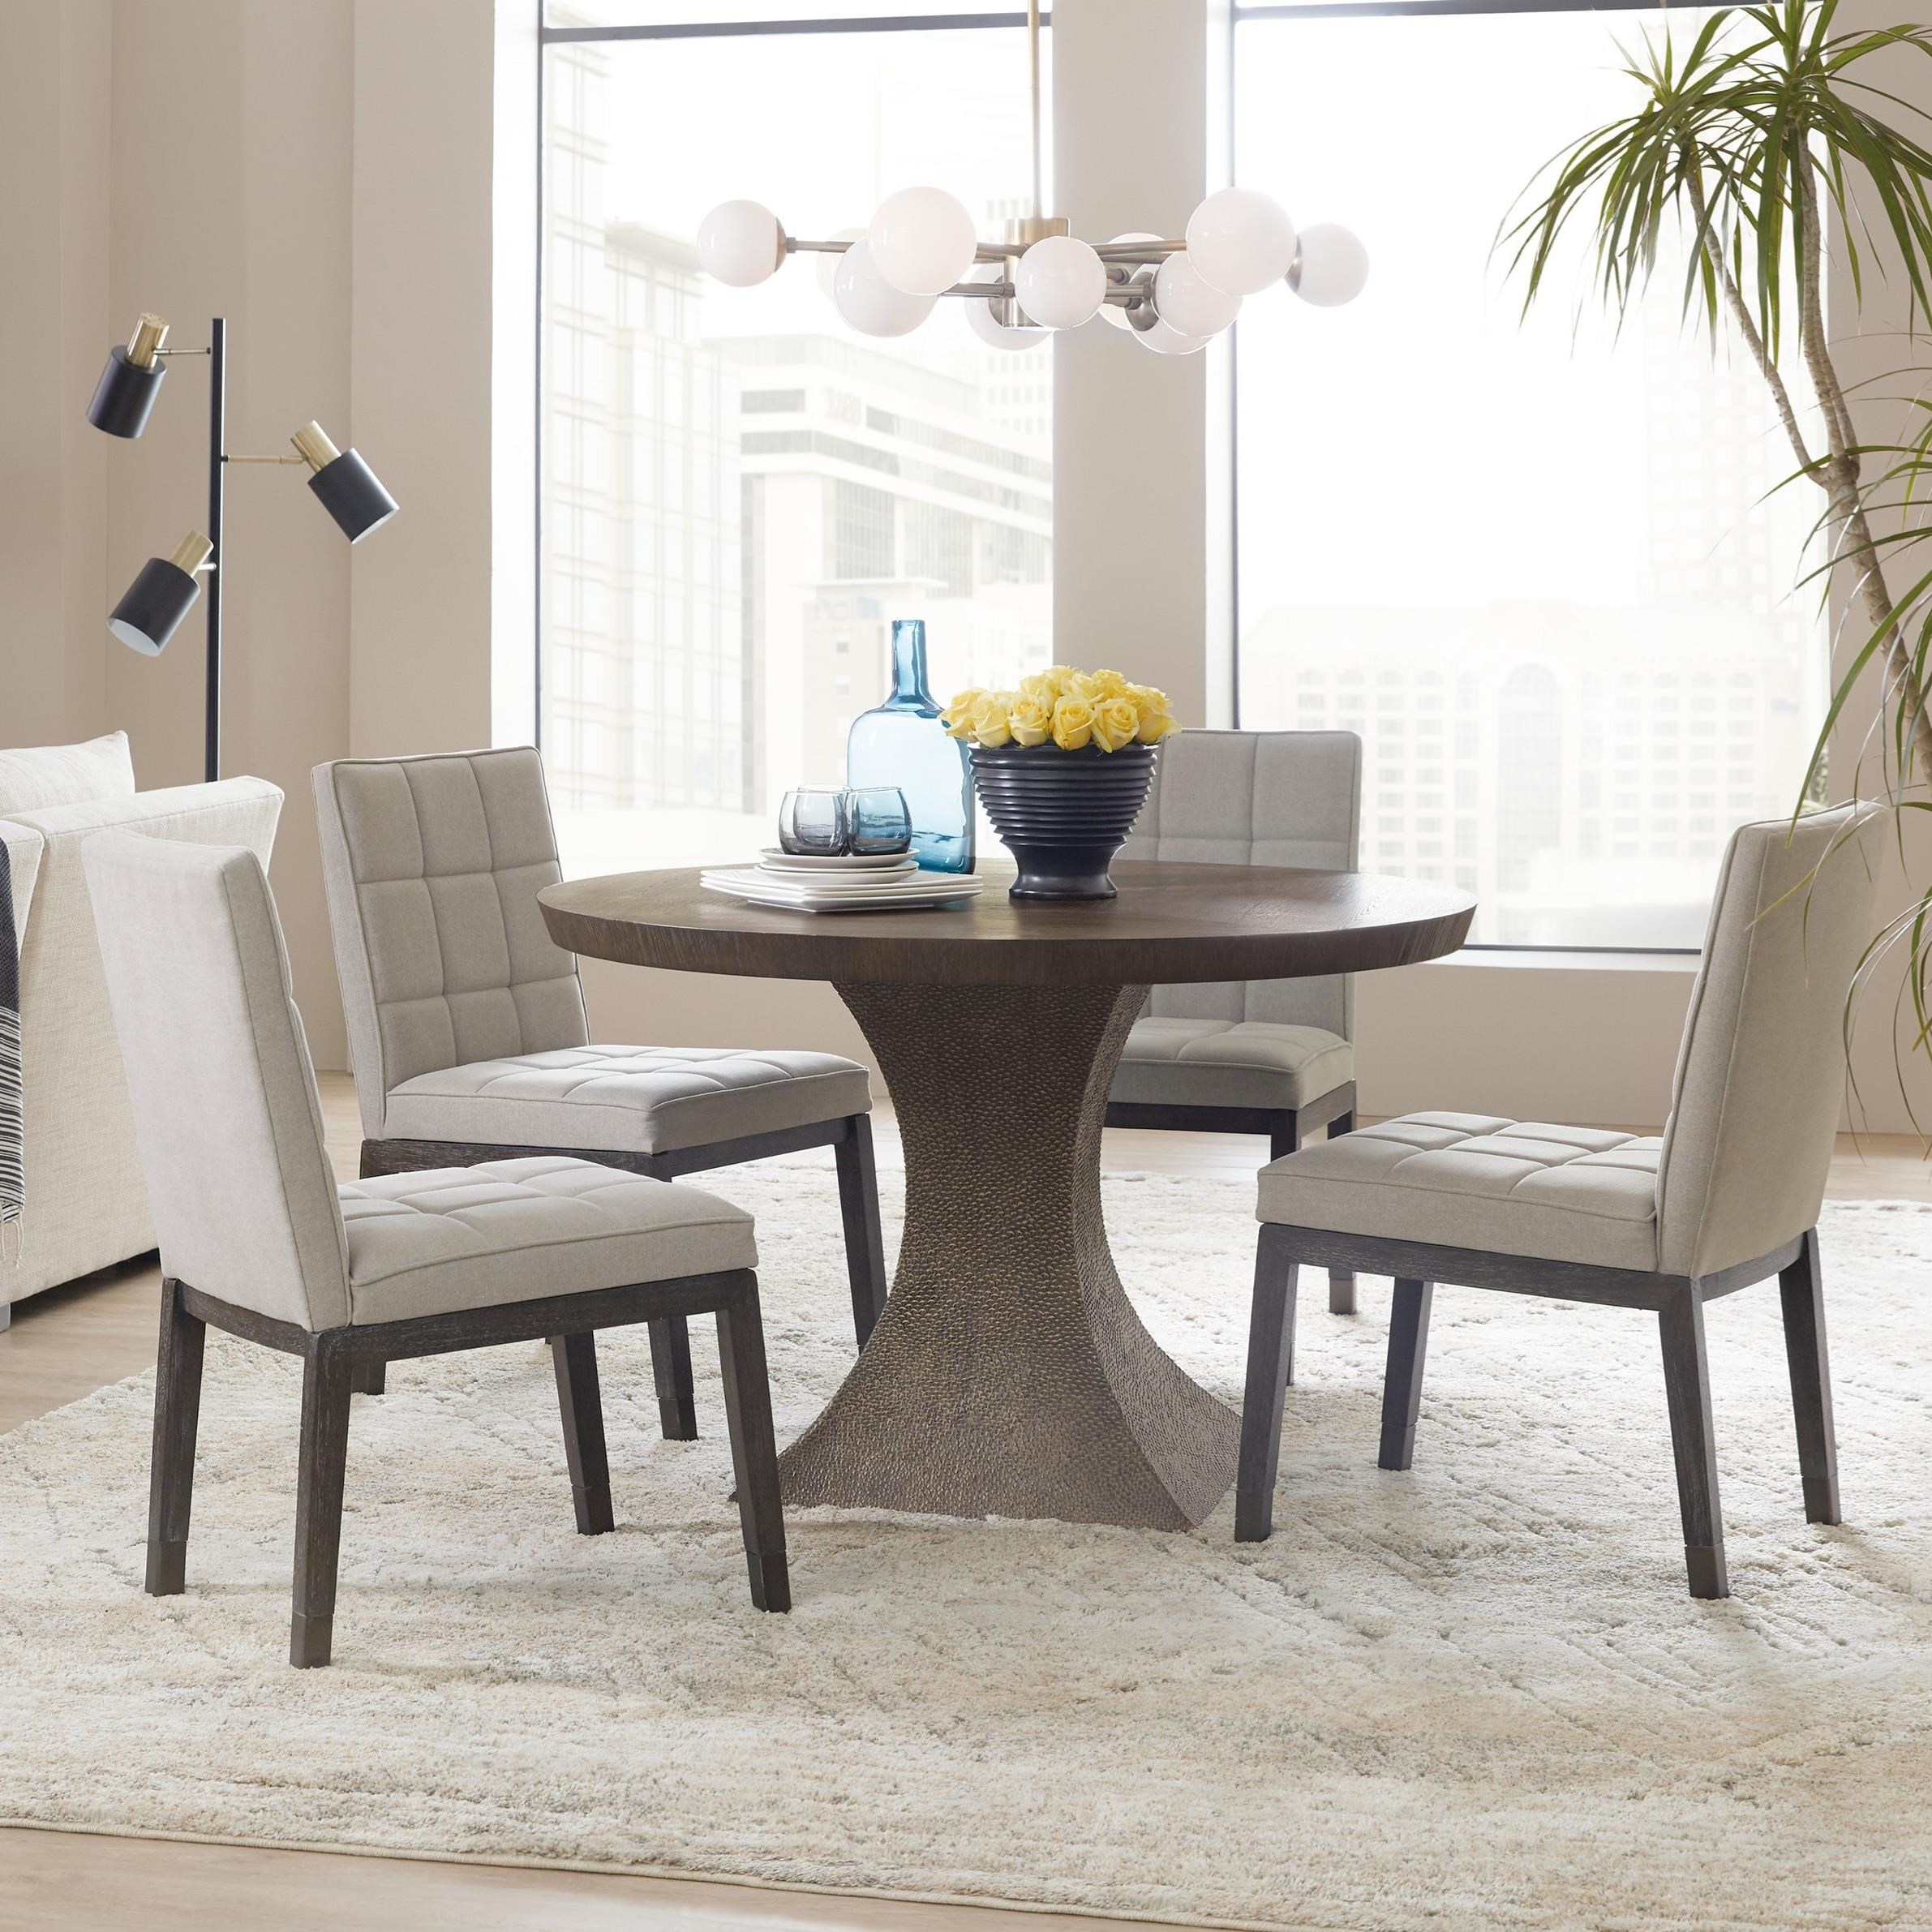 Miramar Aventura 5 Piece Table and Chair Set by Hooker Furniture at Stoney Creek Furniture